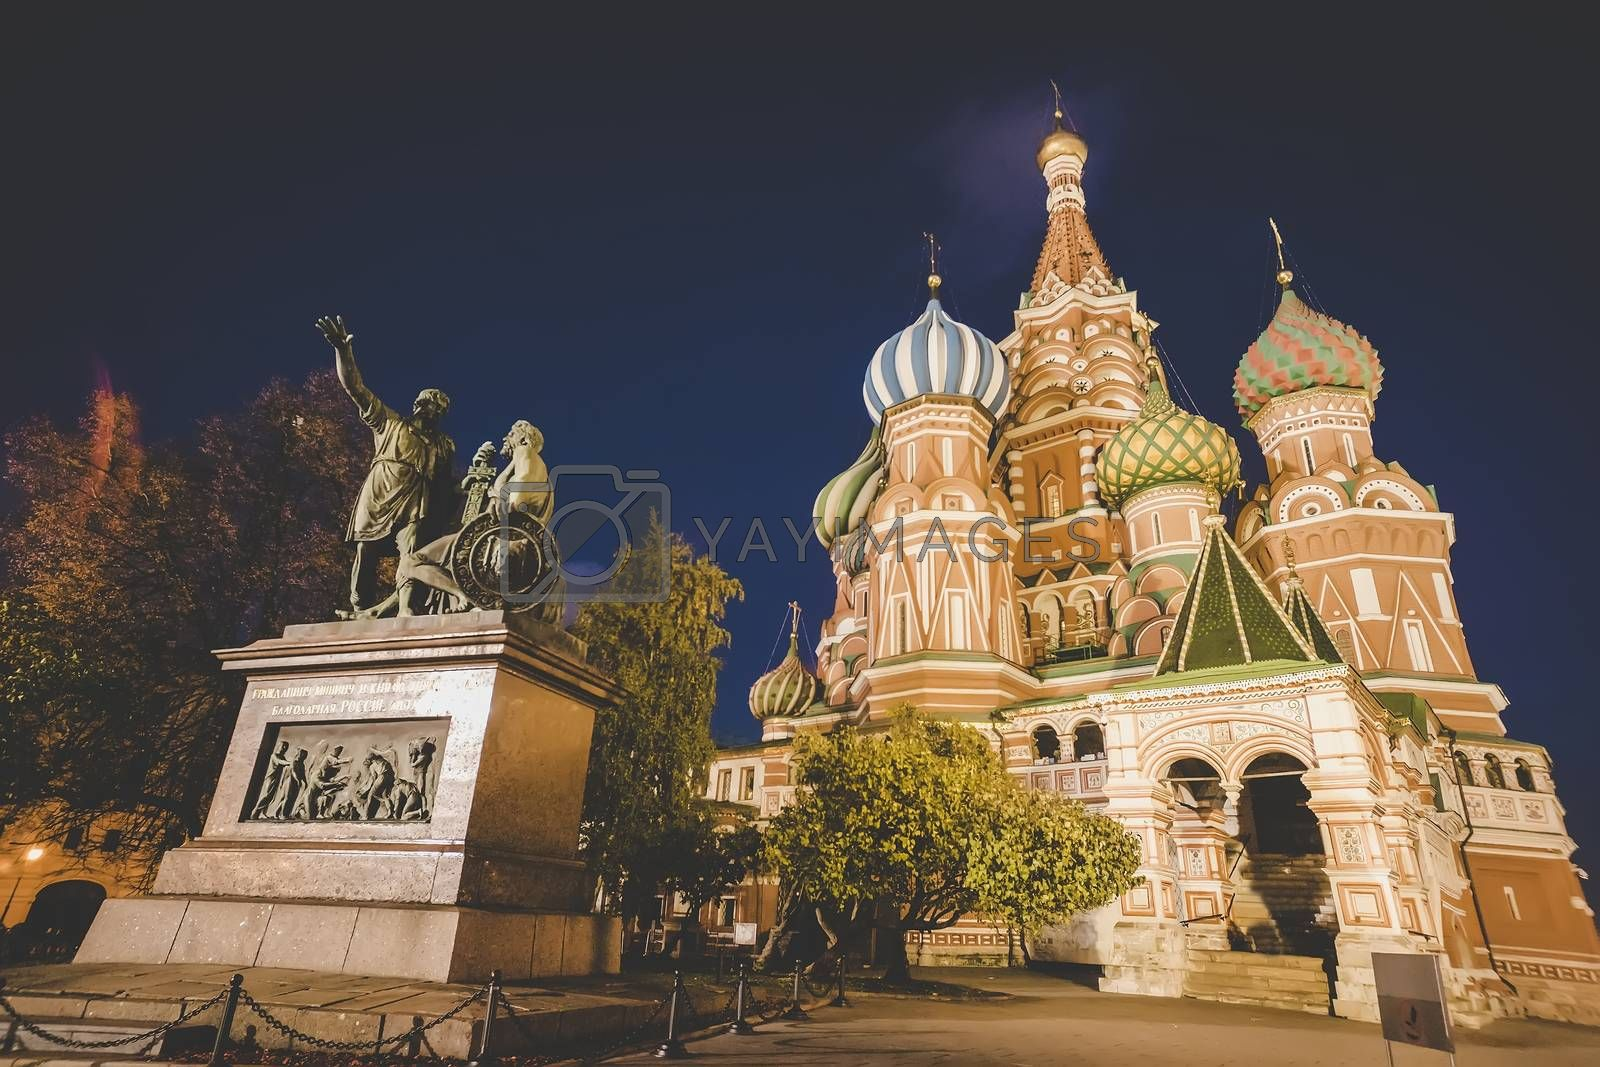 Royalty free image of View of St Basil's Cathedral, the famous and iconic cathedral on Red Square in Moscow, Russia. The Minin and Pojarsky monument at night time by diy13